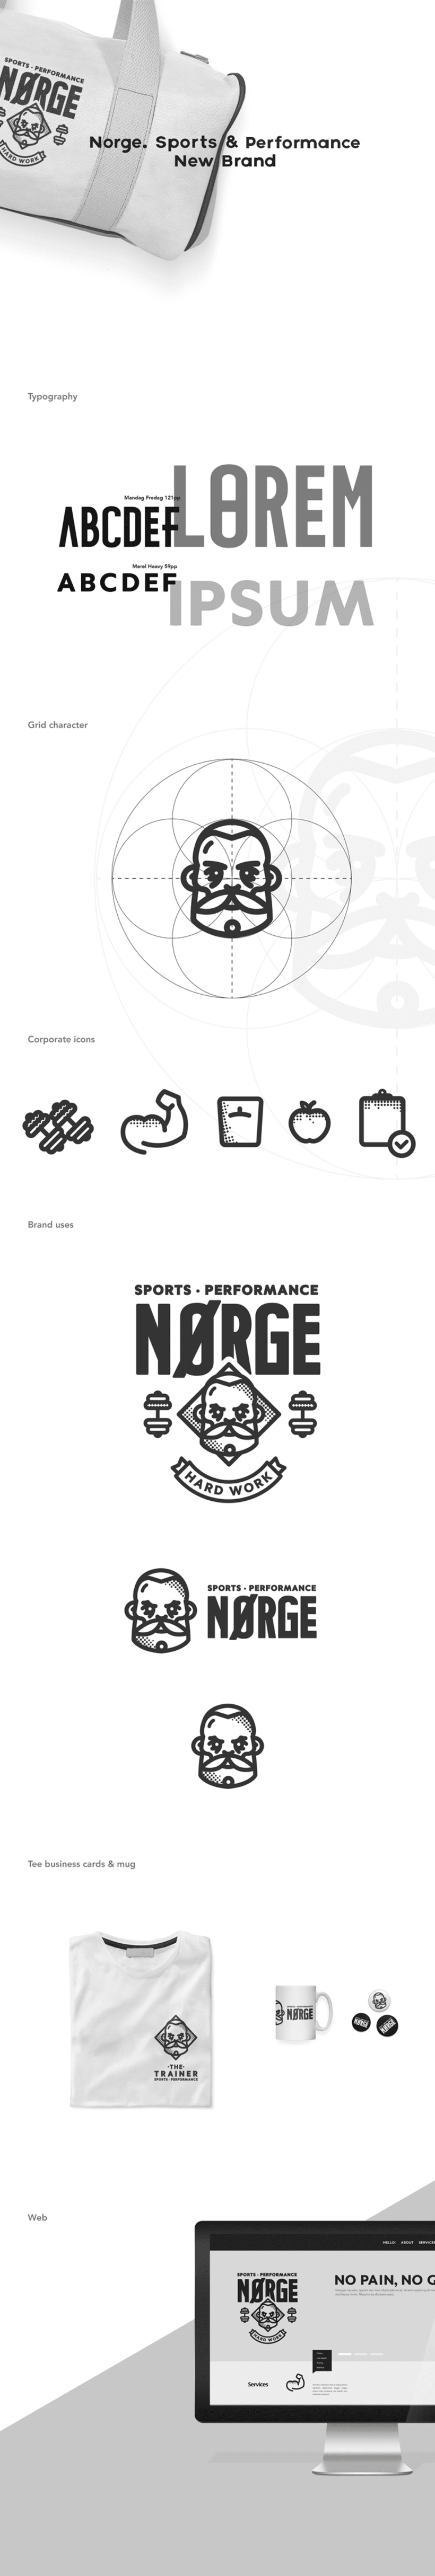 Norge. Sports & Performance 1